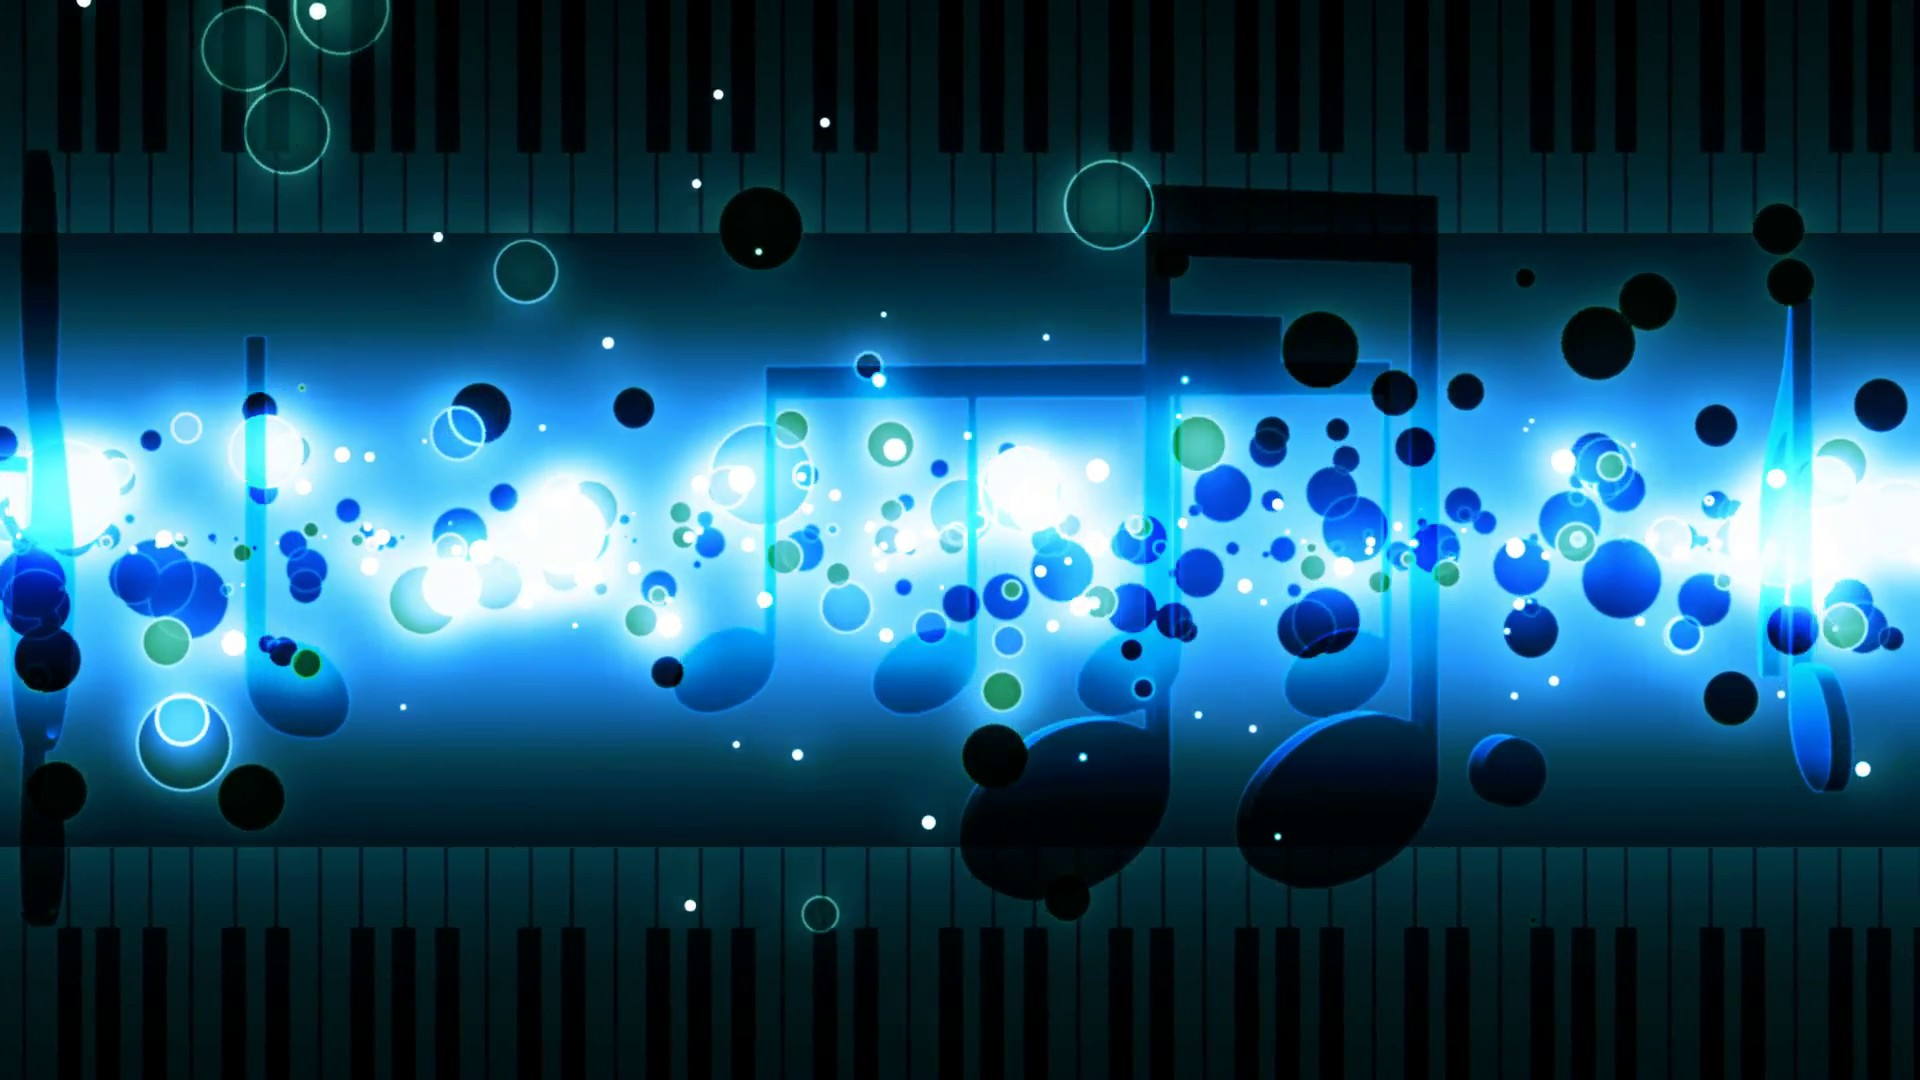 Music Background Images: Music Background ·① Download Free HD Wallpapers For